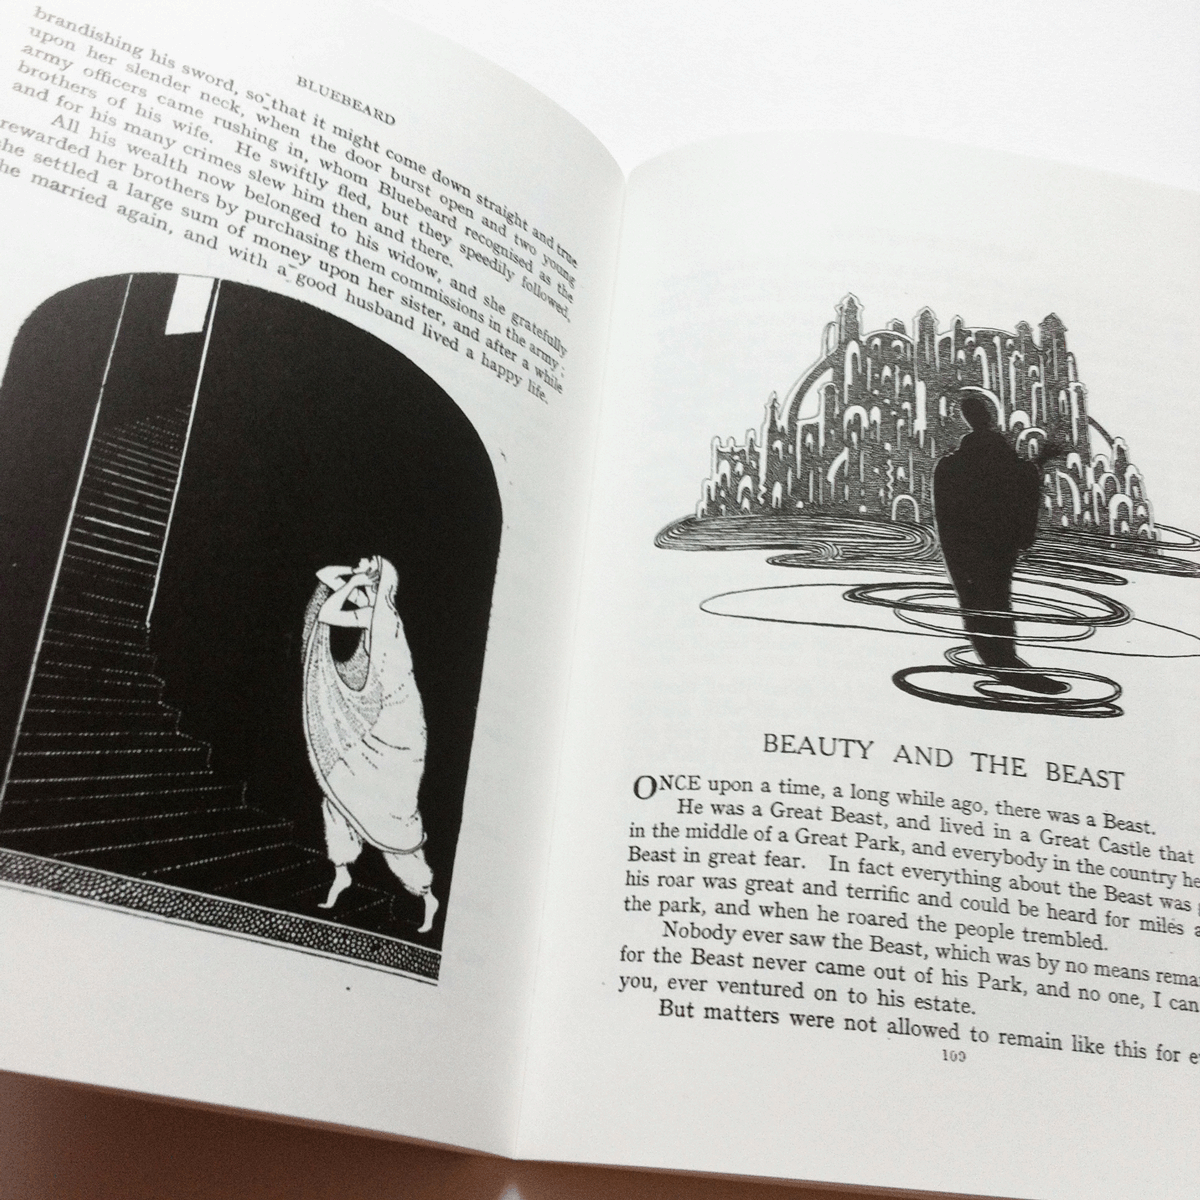 Illustrations by Jennie Harbour for Bluebeard and Beauty and the Beast. From My book of Favourite Fairy Tales.